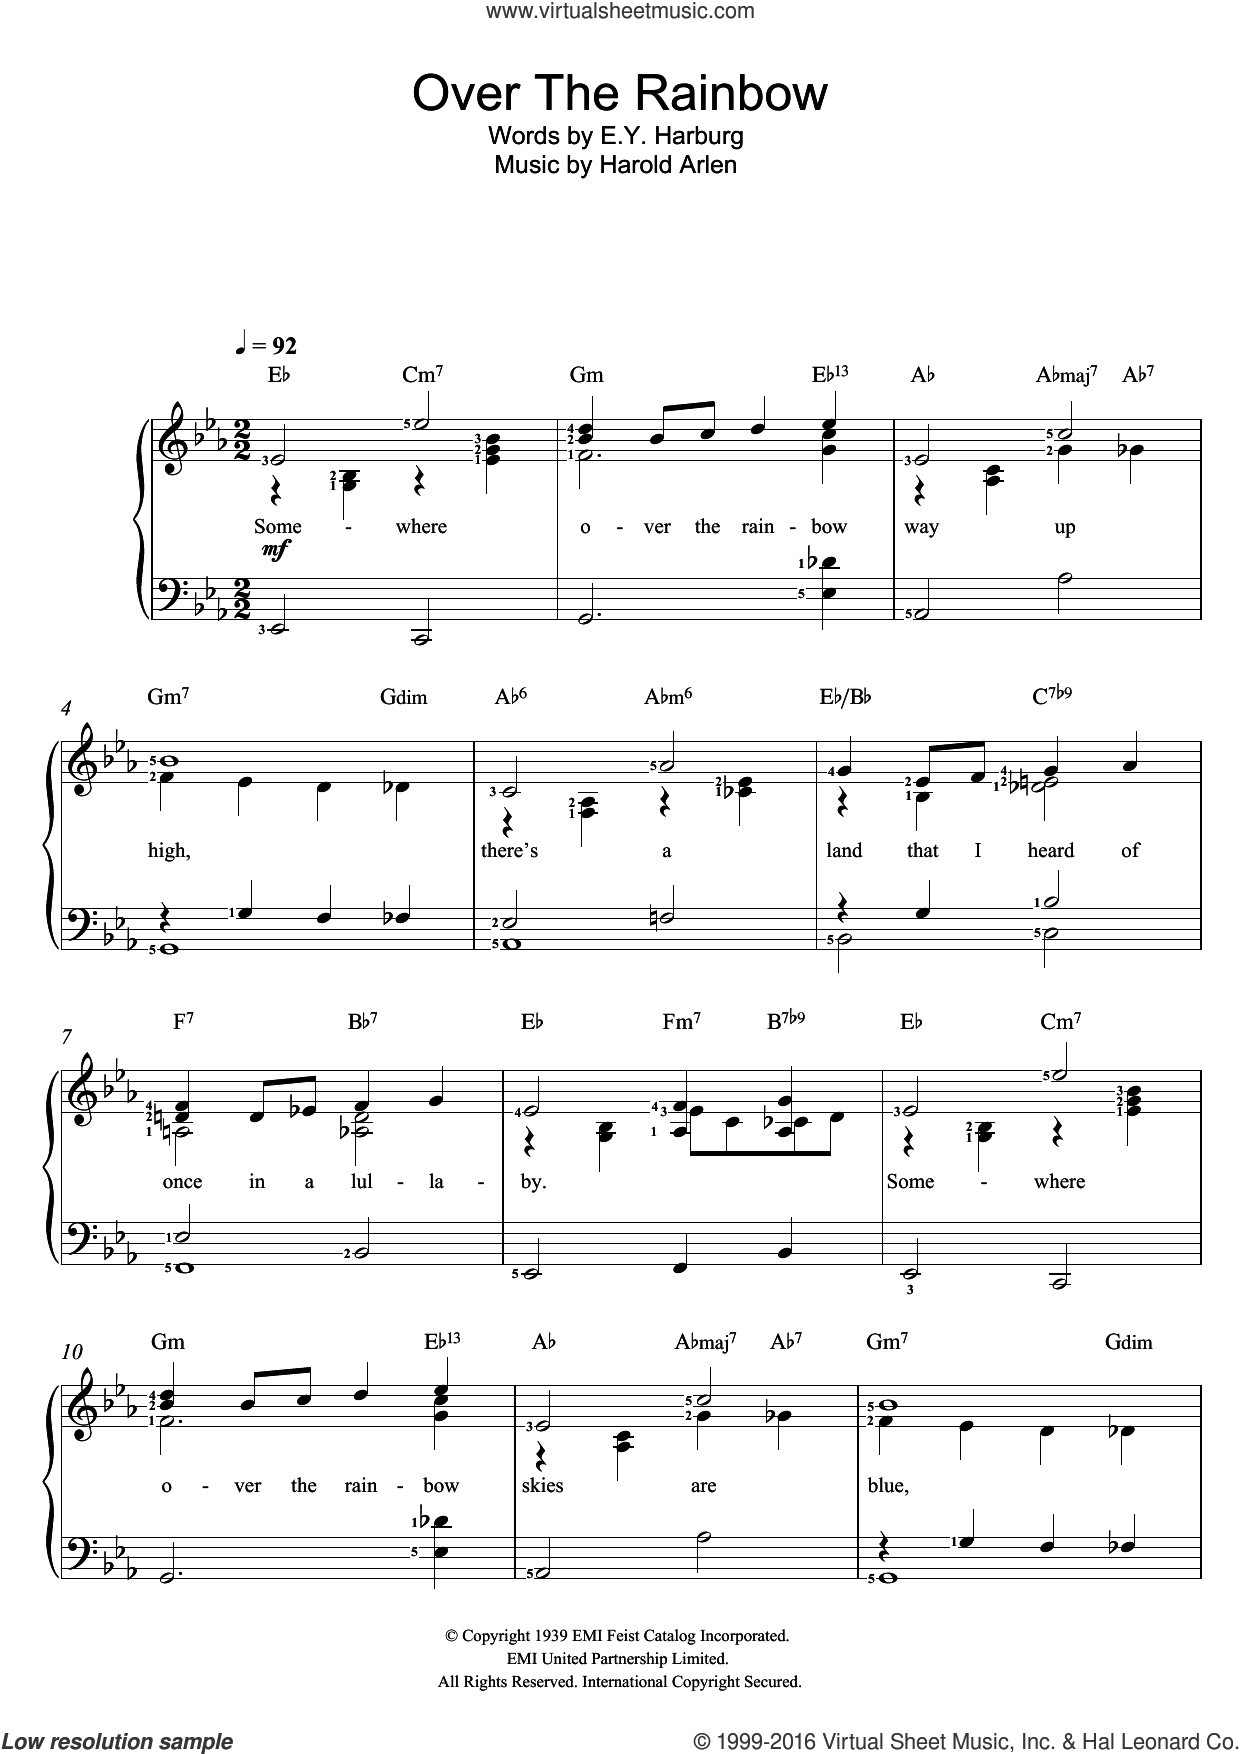 Over The Rainbow (from 'The Wizard Of Oz') sheet music for voice and piano by Judy Garland, Eva Cassidy, E.Y. Harburg and Harold Arlen, intermediate